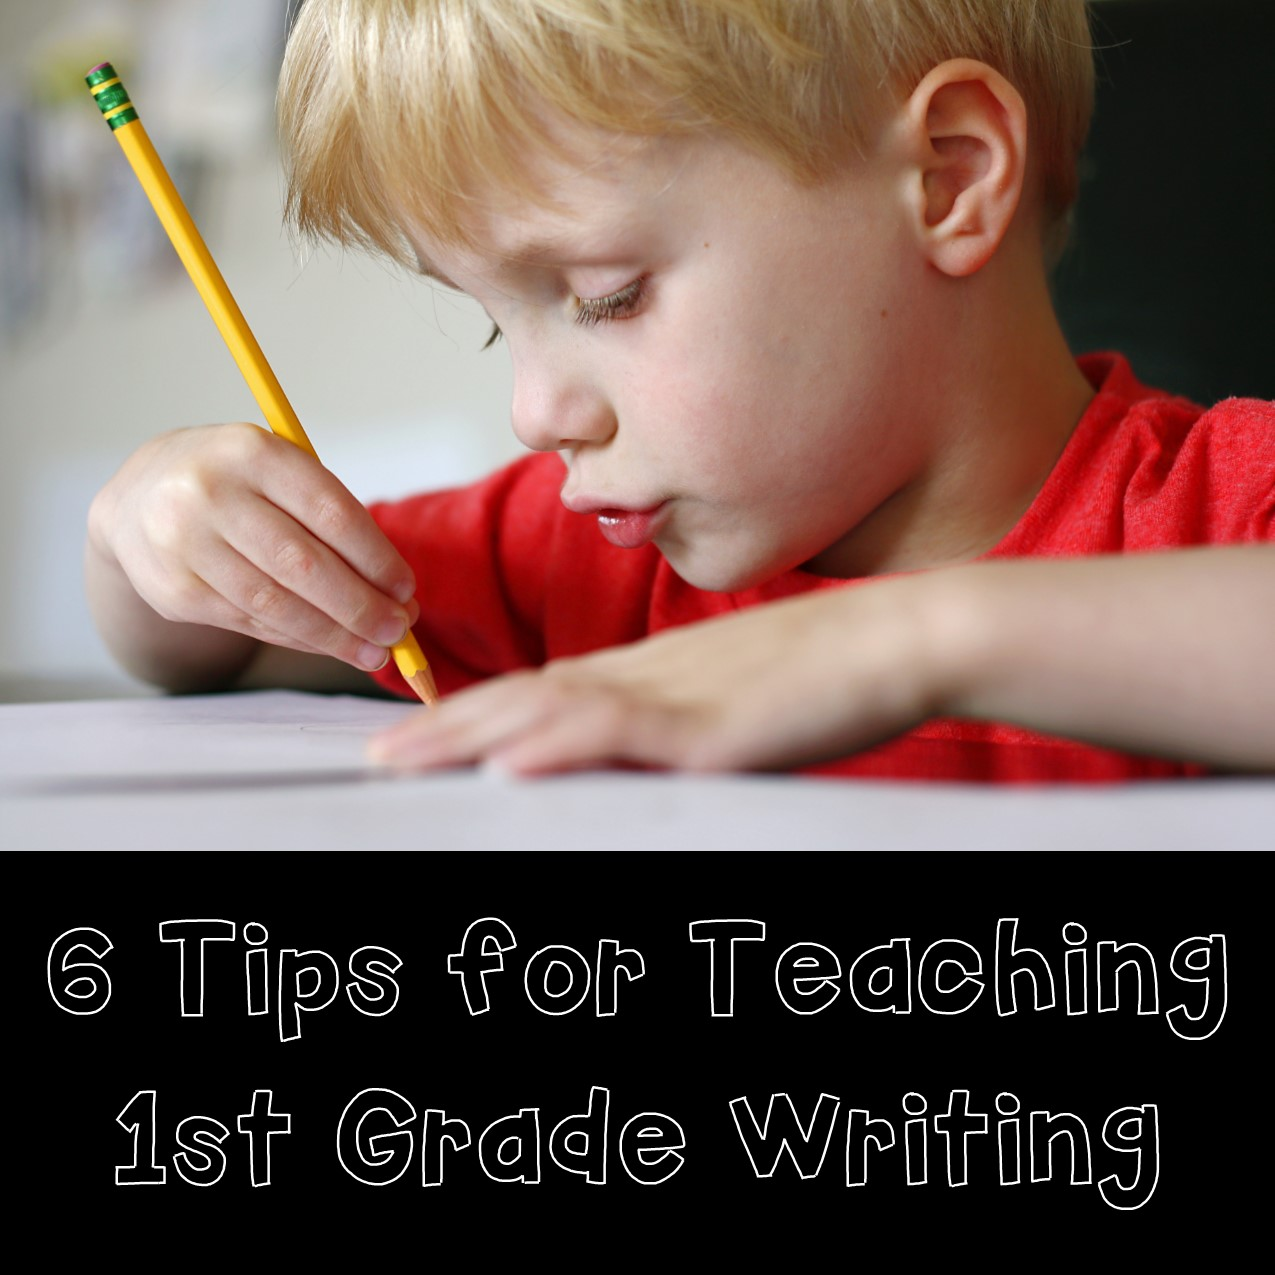 6 Tips For Teaching First Grade Writing